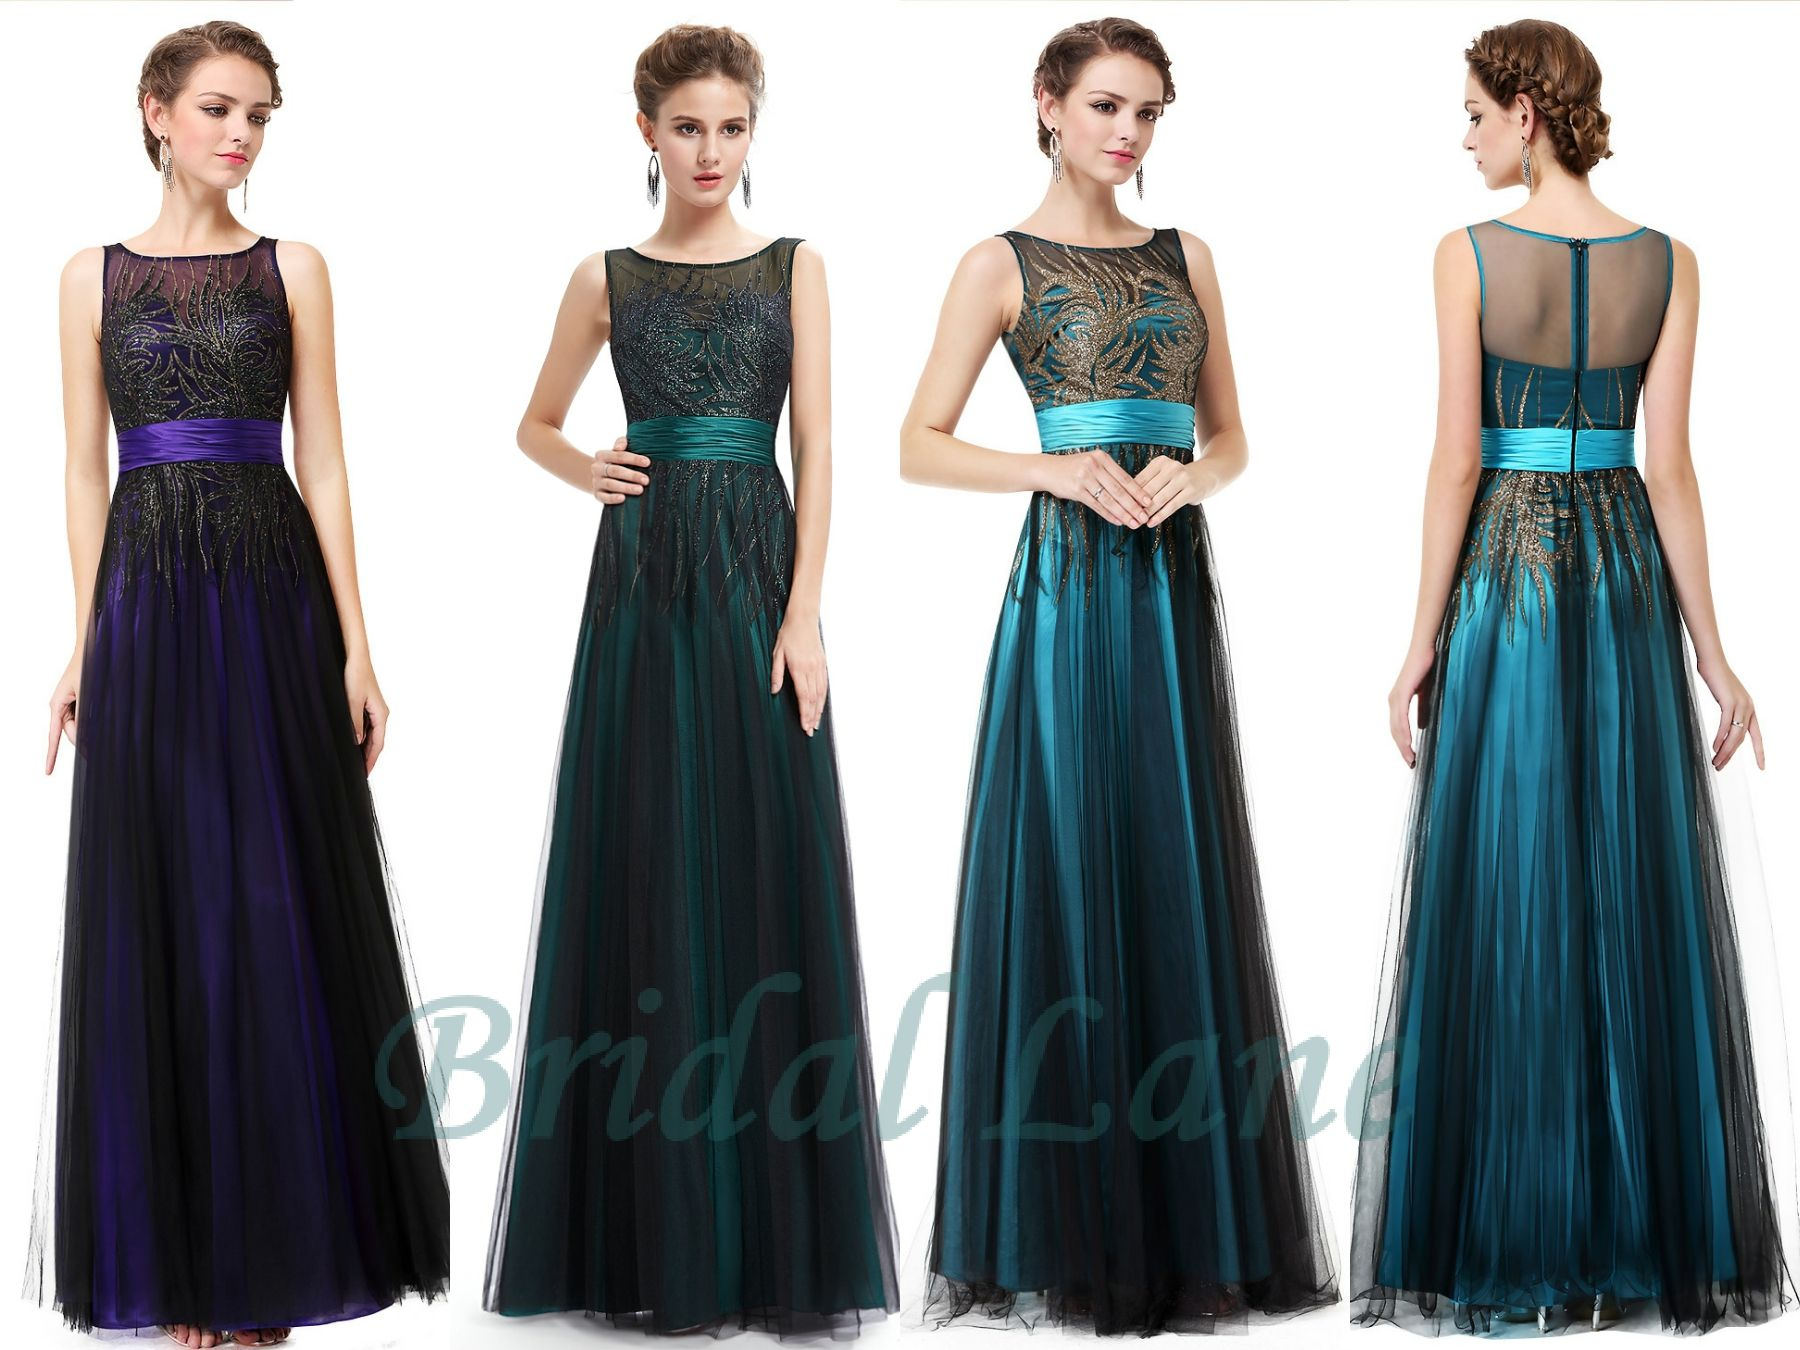 Cheap Prom Dresses In Cape Town_Prom Dresses_dressesss